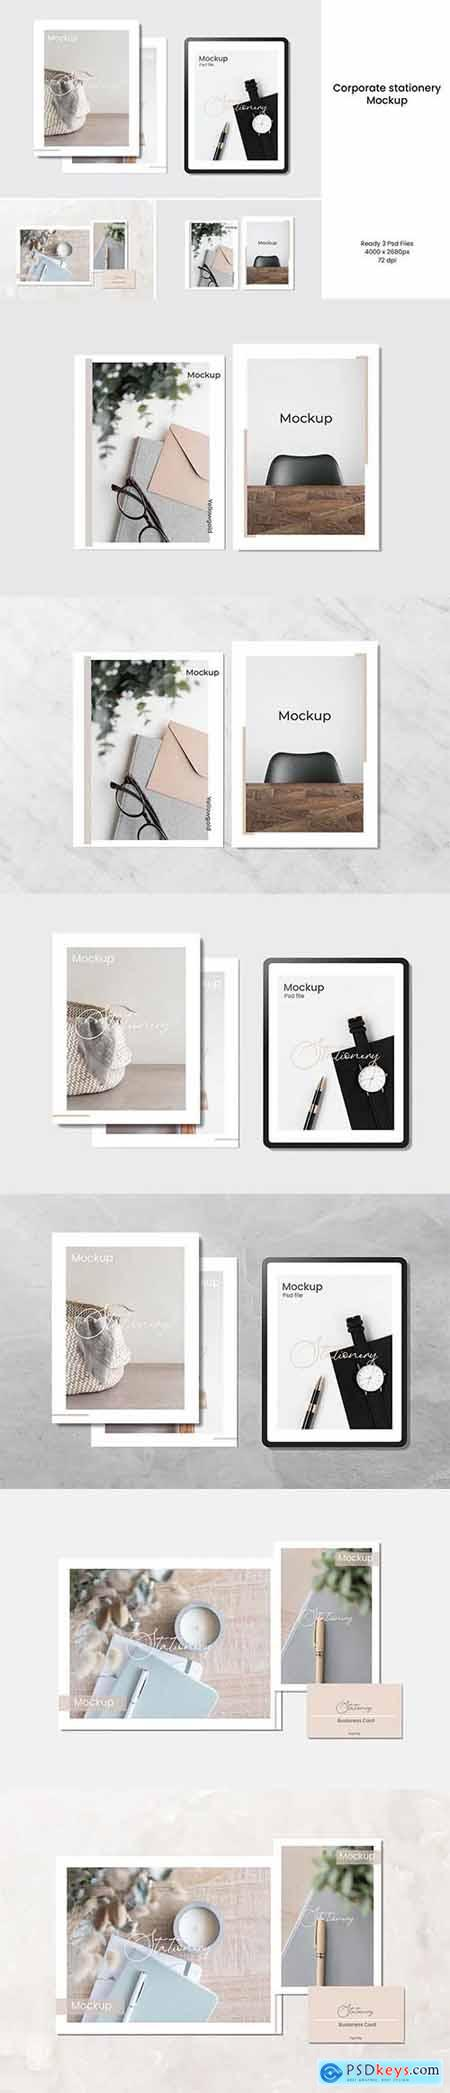 Corporate Stationery and Tablet Mockup